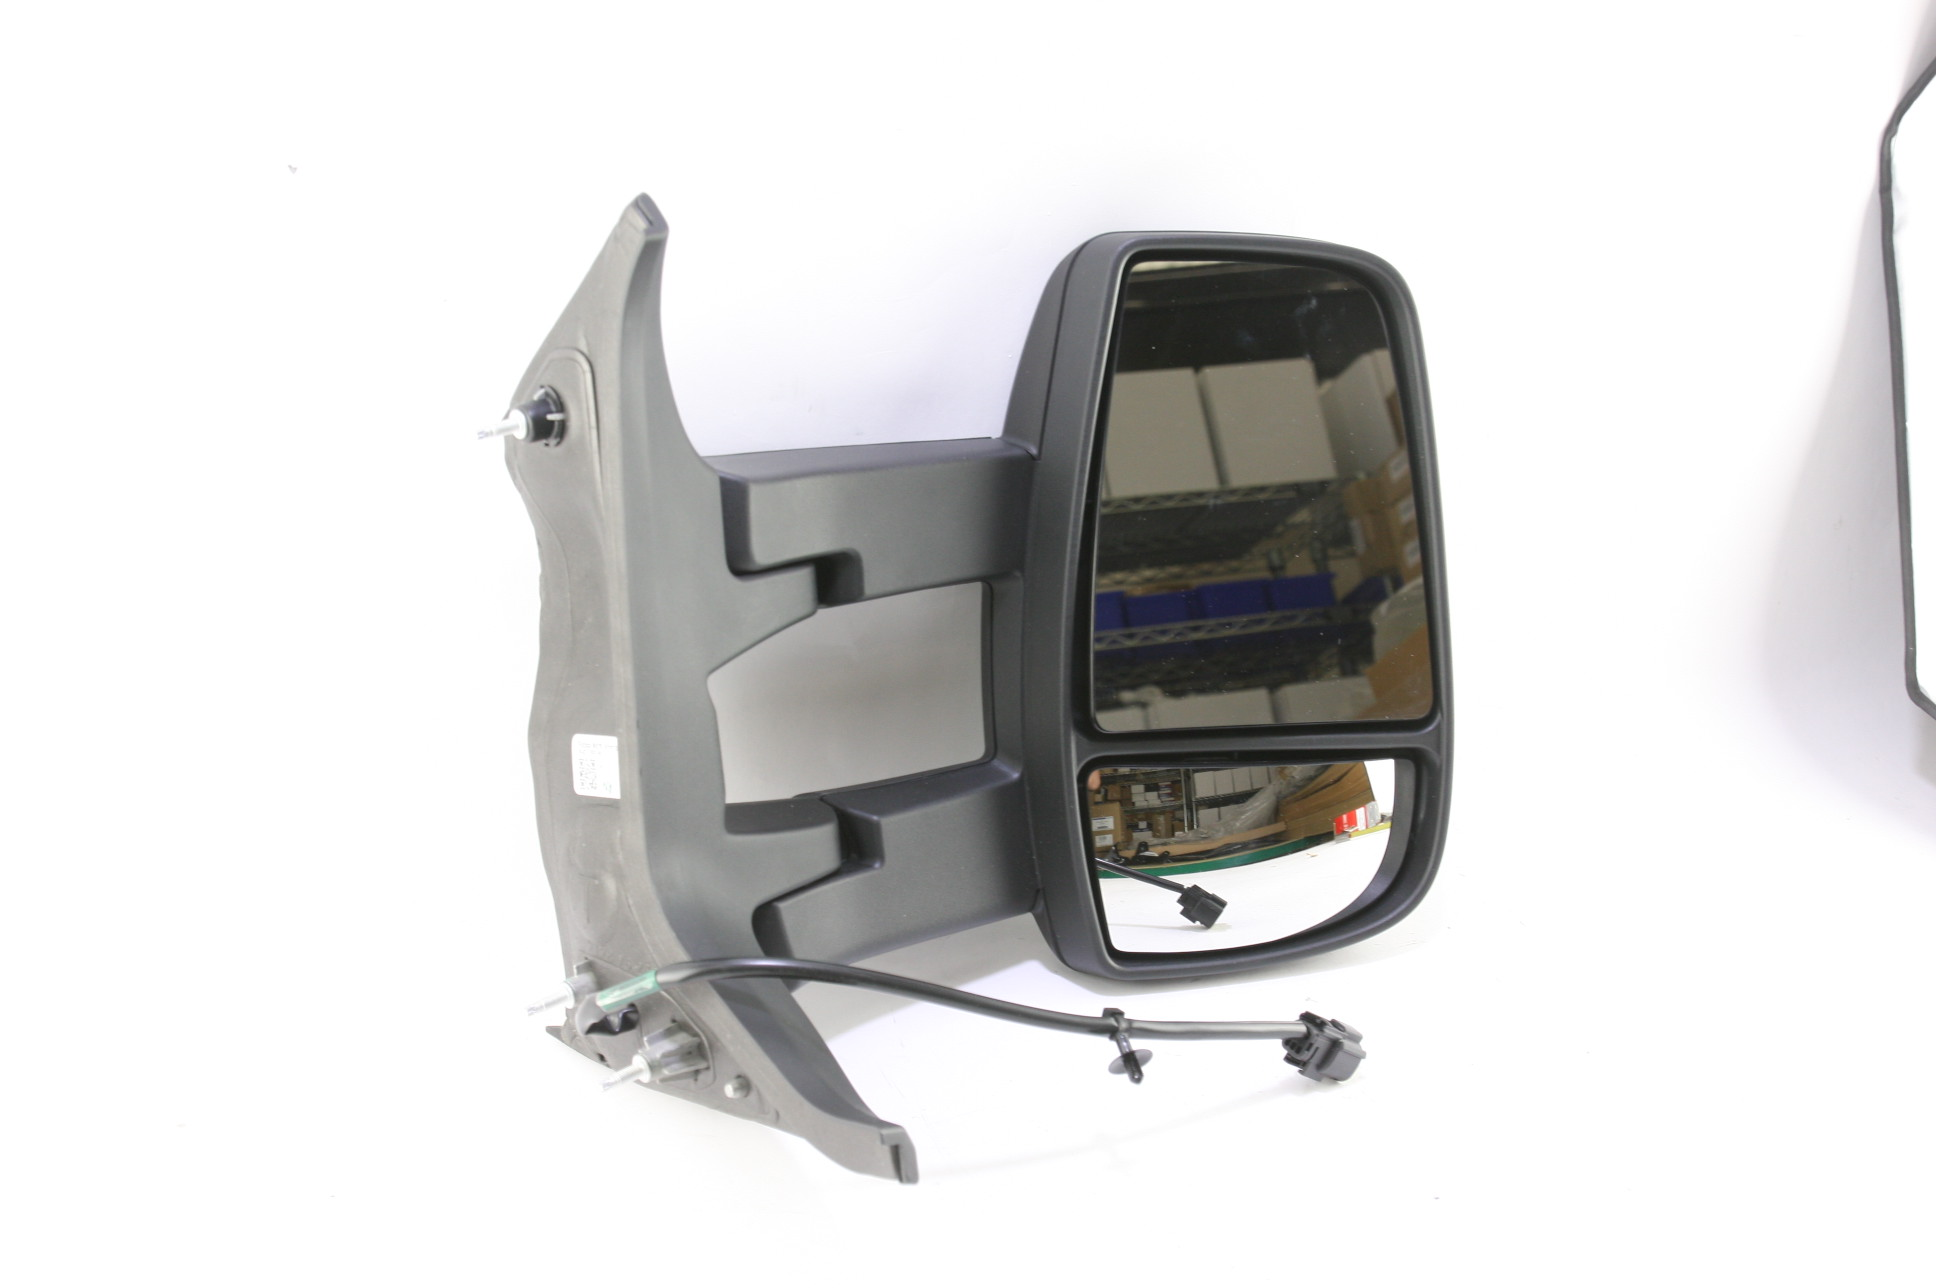 **** New OEM CK4Z17682HA 15-16 Transit 150 Door Side Rear View Mirror Assy Right - image 1